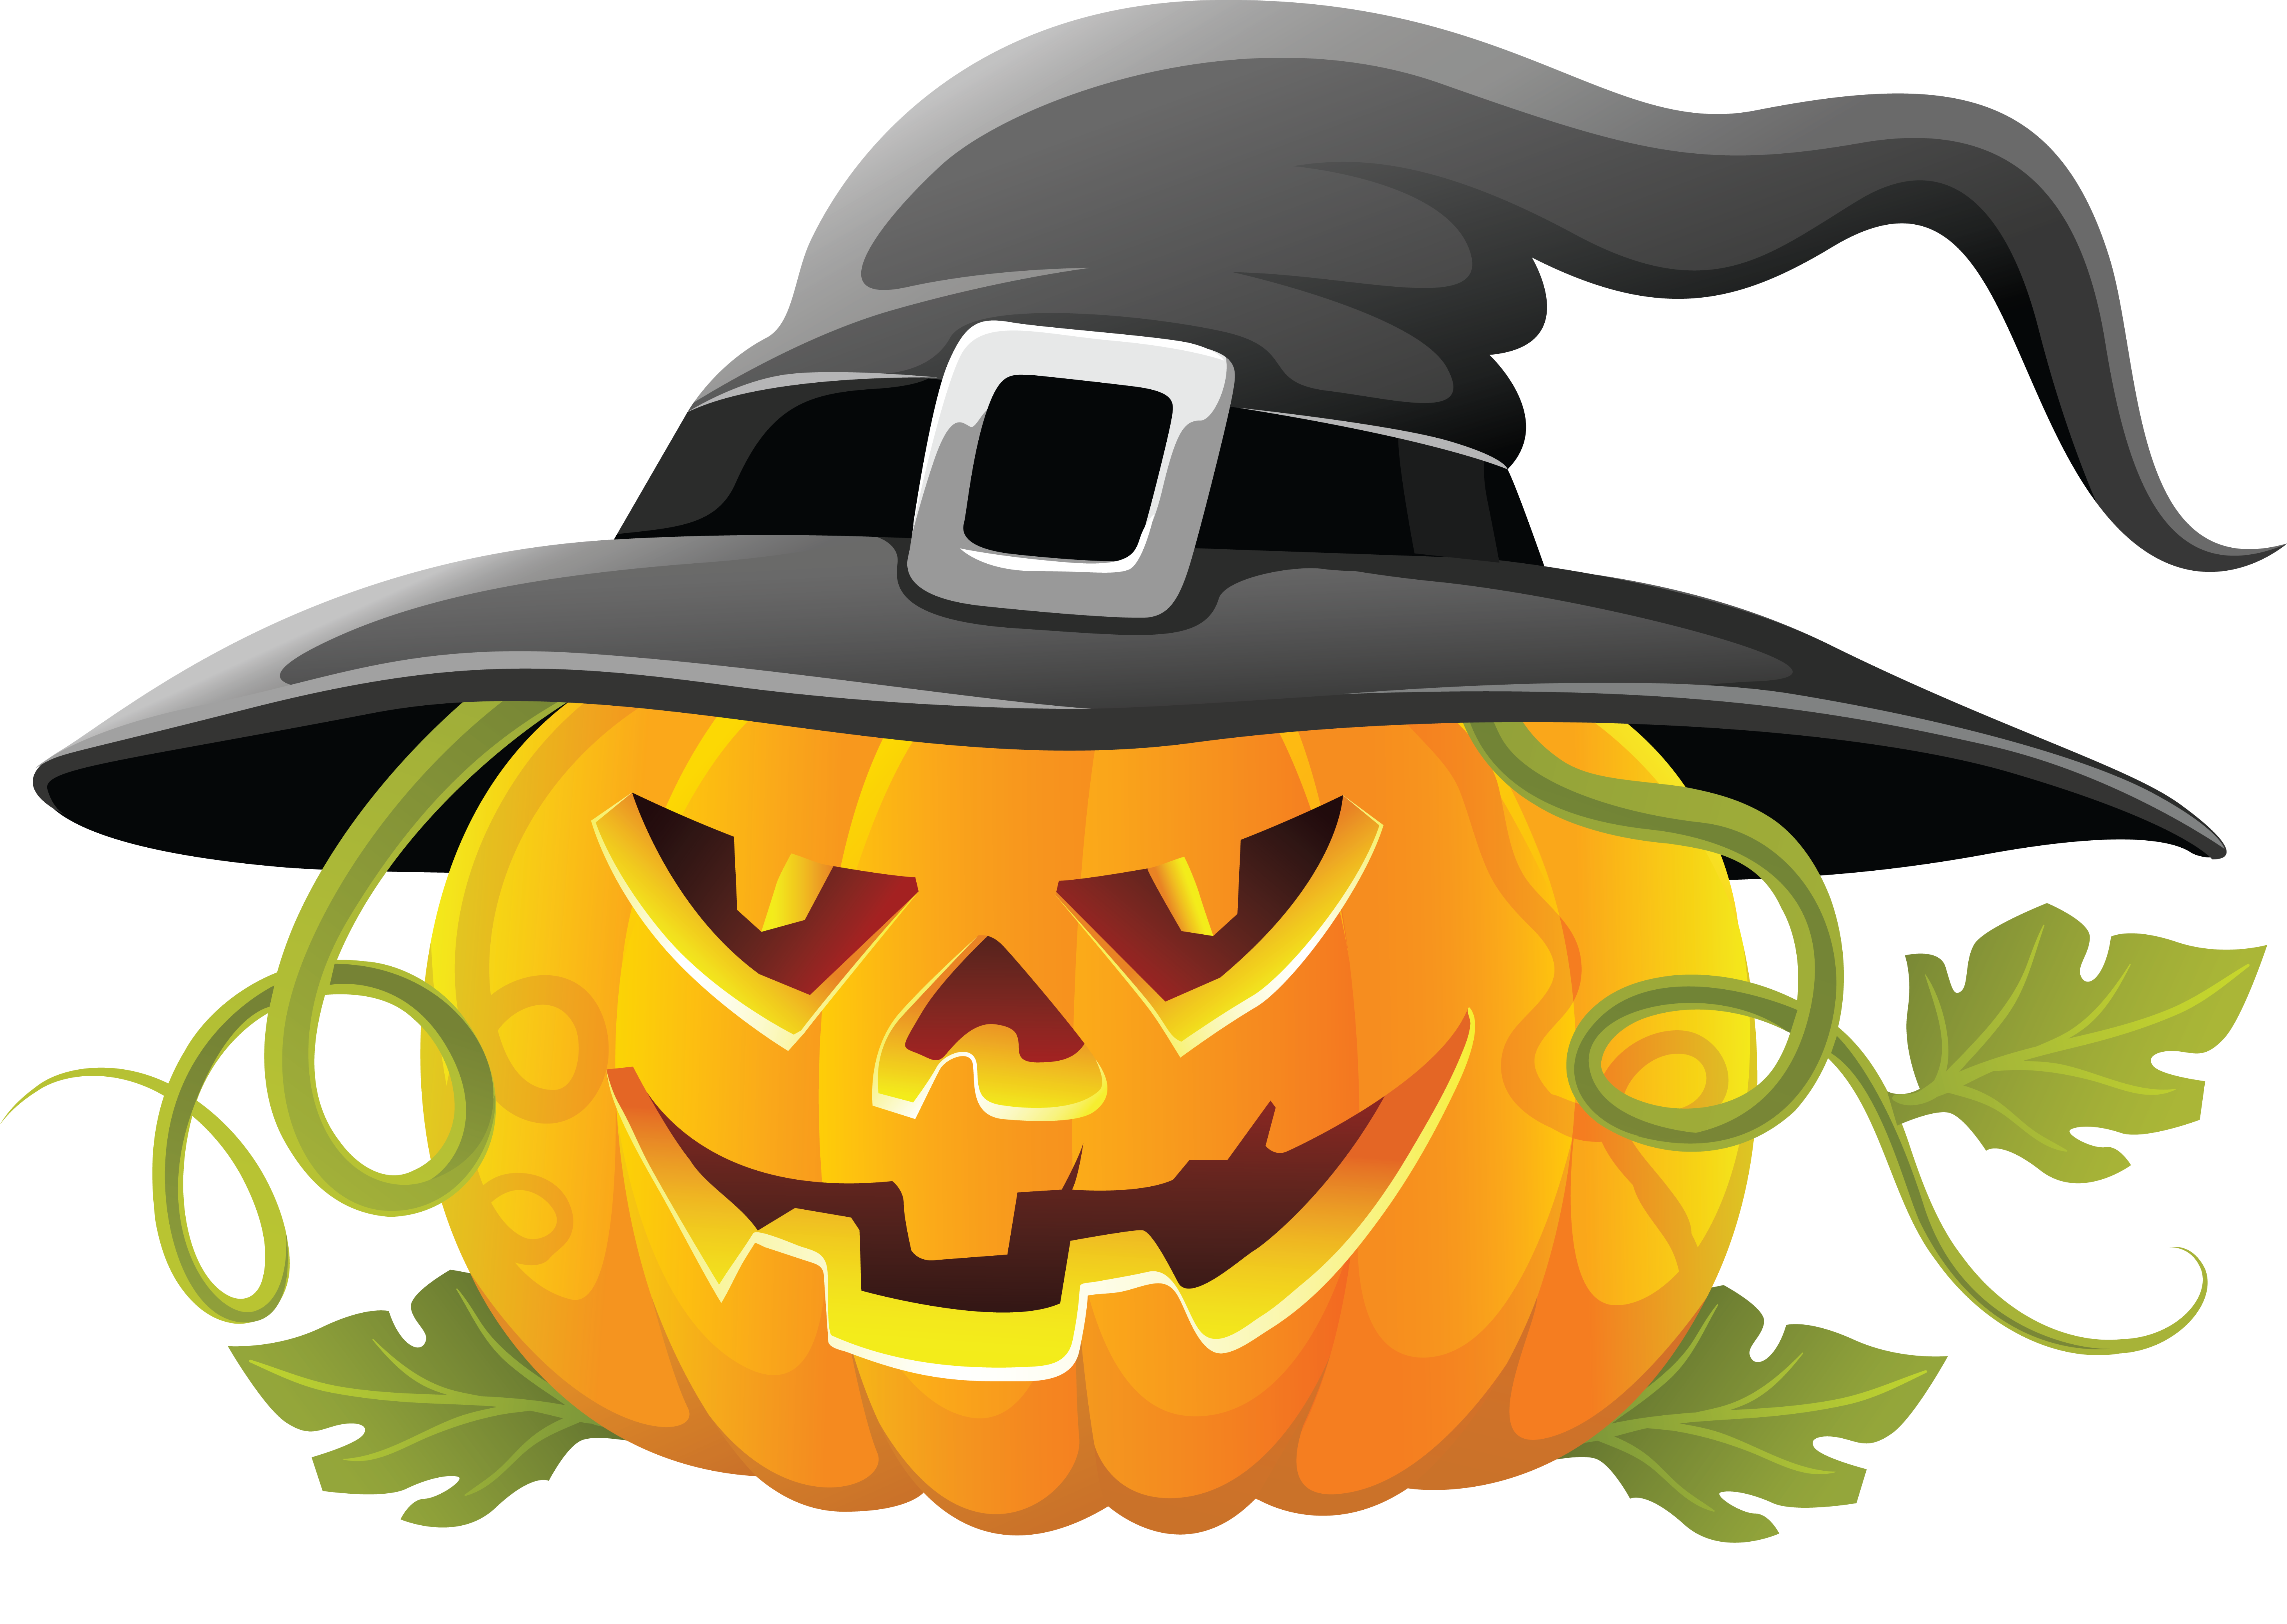 5863x4163 Halloween Jack O' Lantern Png Clipart